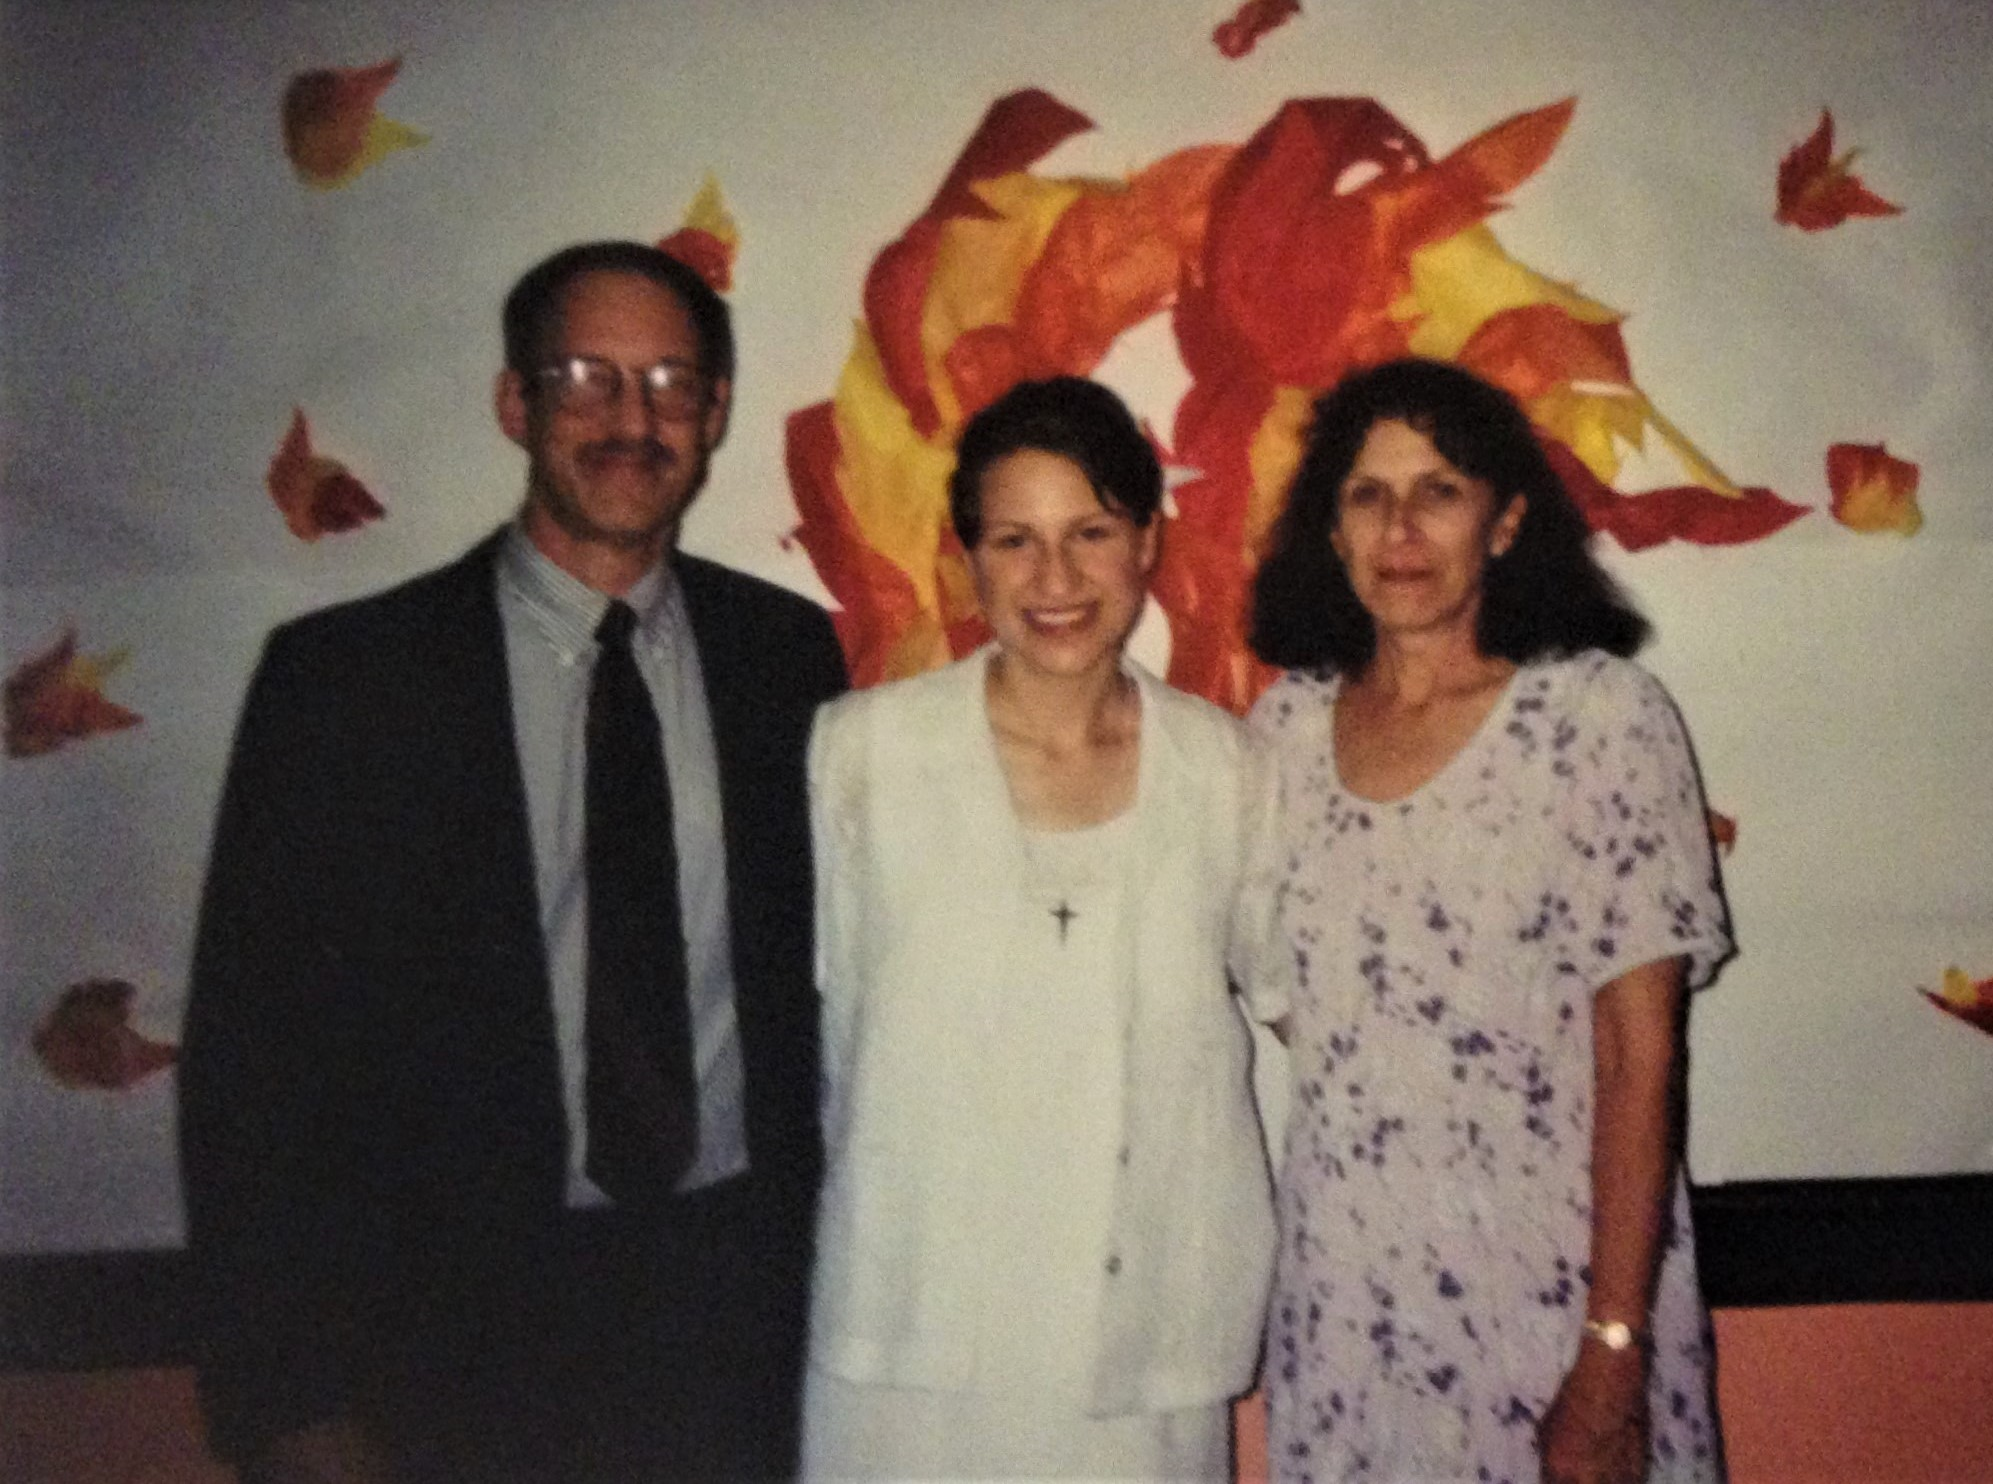 My parents and I at my first vows.